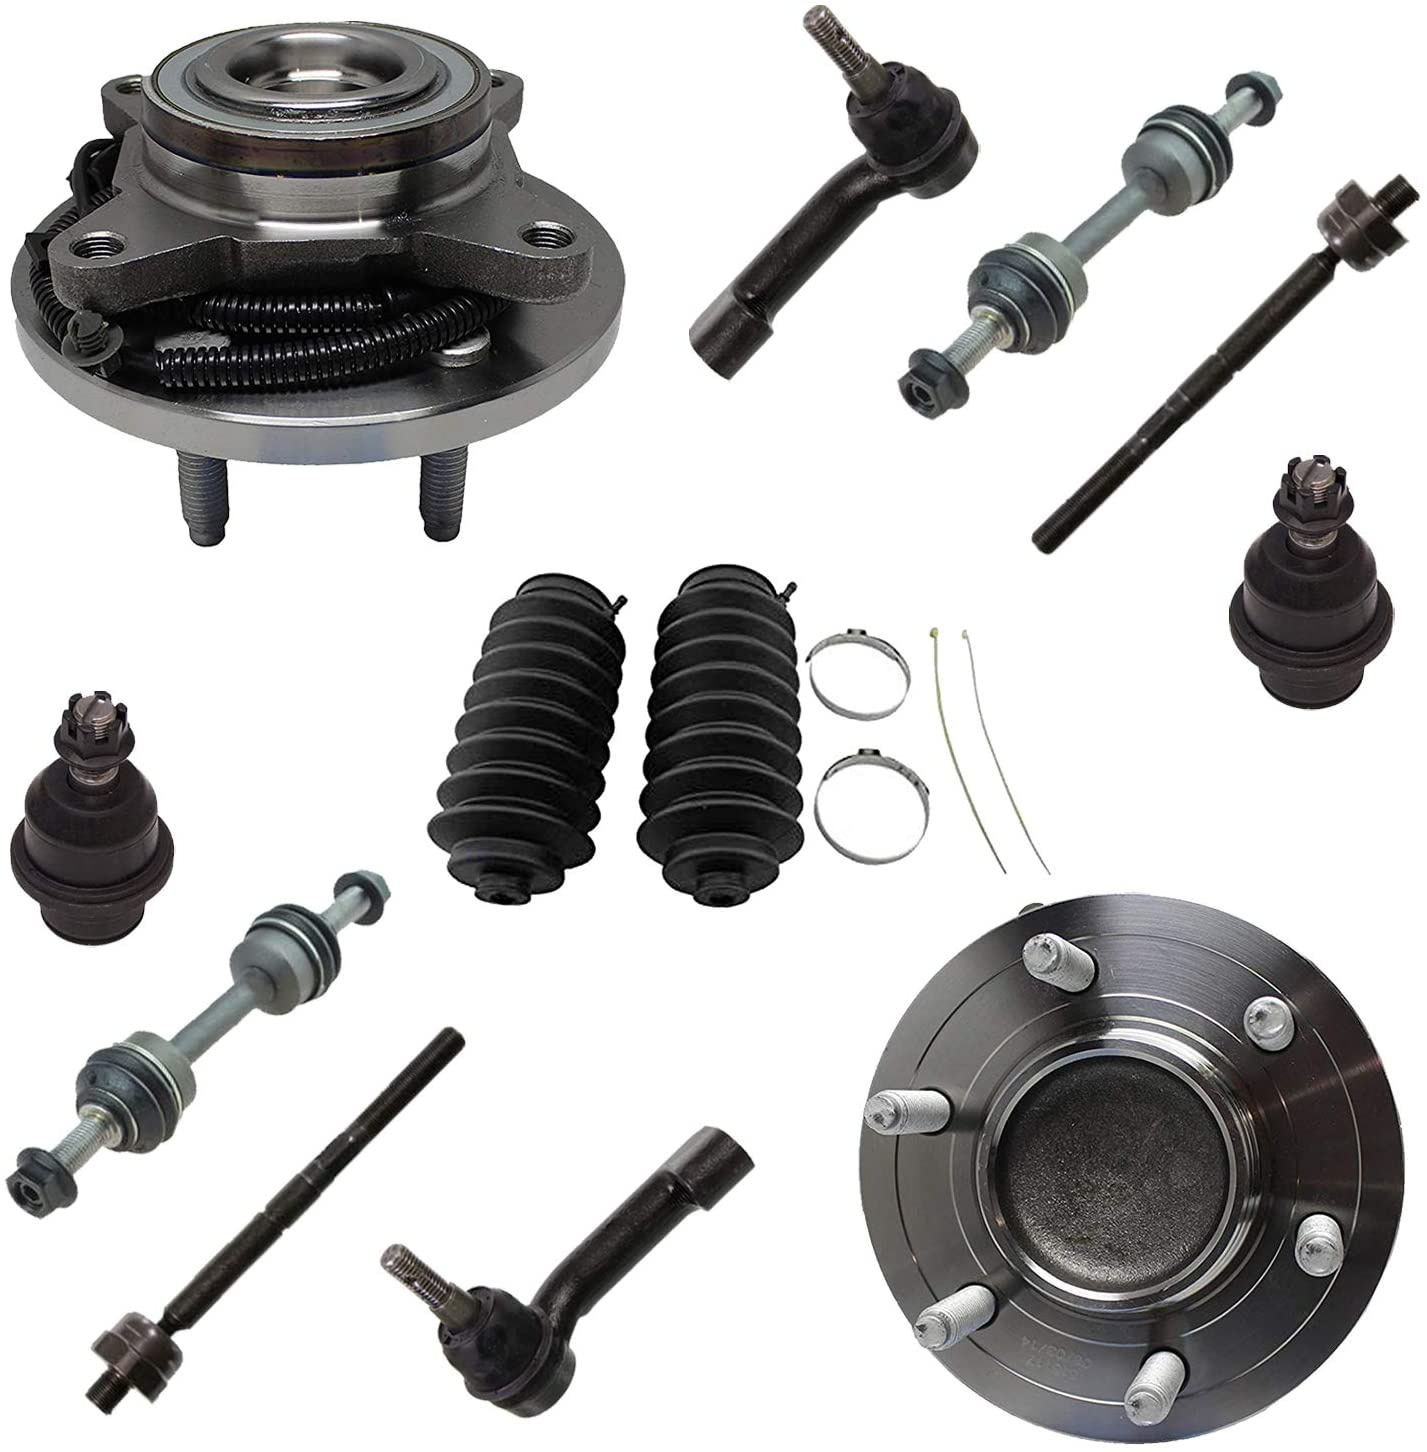 Detroit Axle - 12pc Front Wheel Bearing & Hubs, Inner Outer Tie Rods w/Boots Sway Bar Links and Ball Joints for 2009-2010 Ford F-150/ Expedition/Lincoln Navigator - 2WD w/ABS